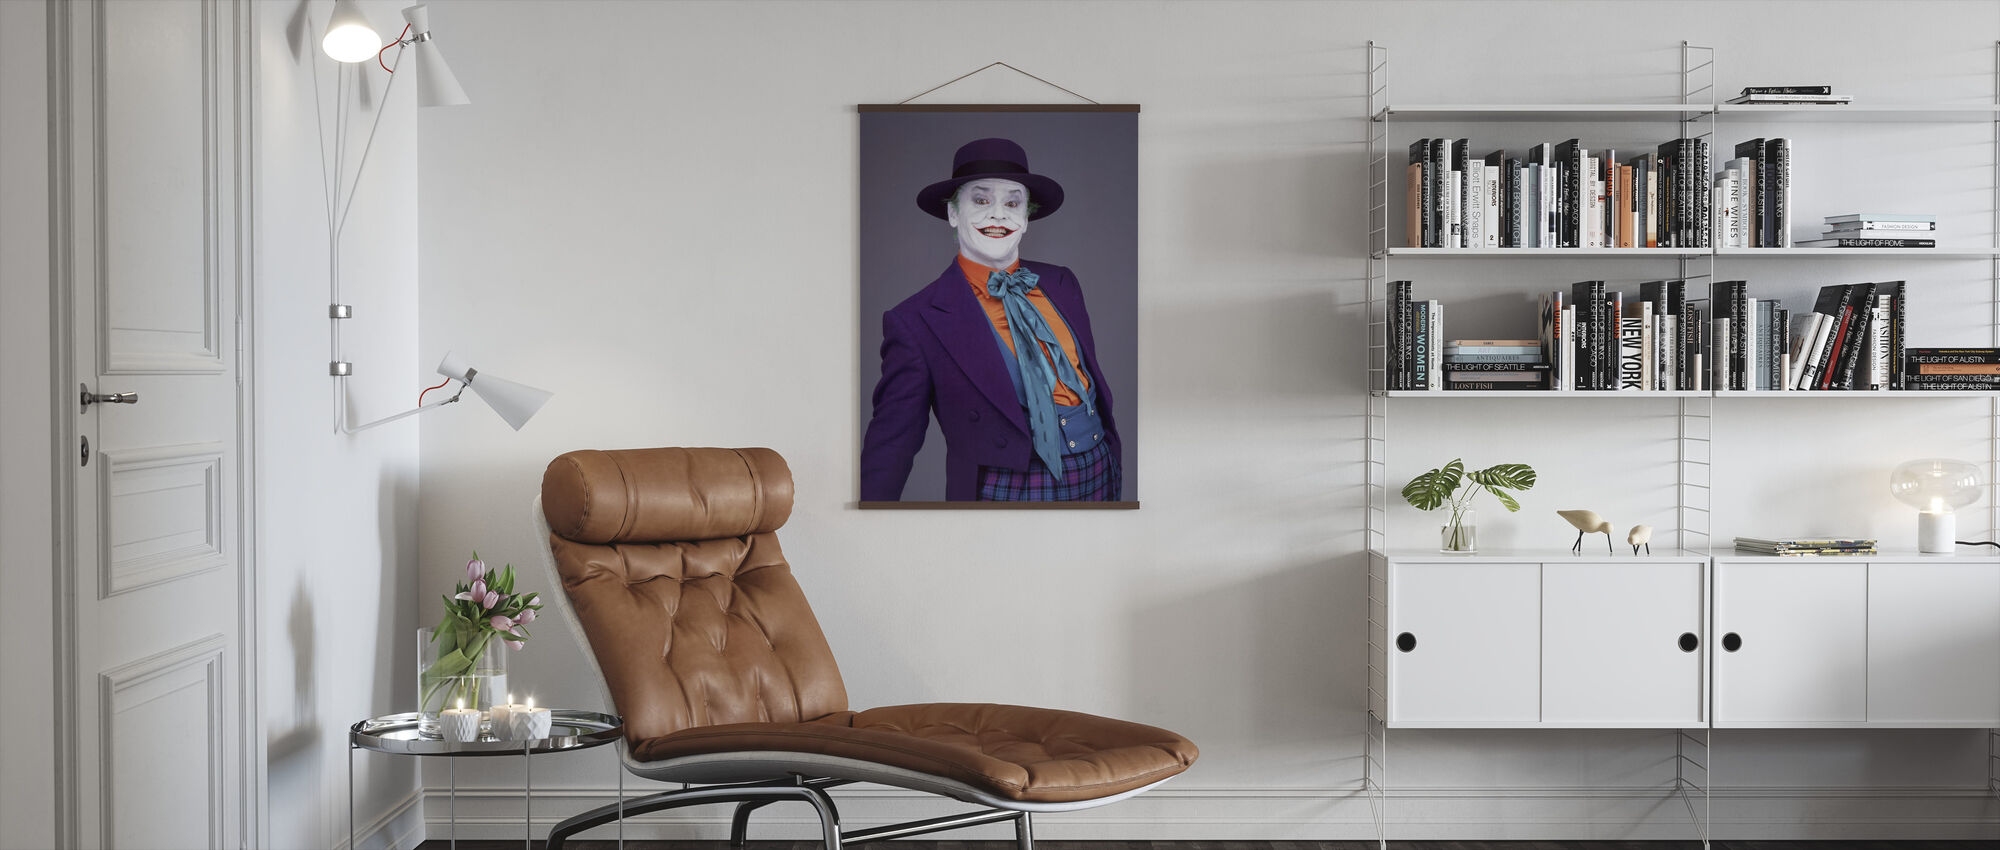 Jack Nicholson in Batman - Poster - Living Room